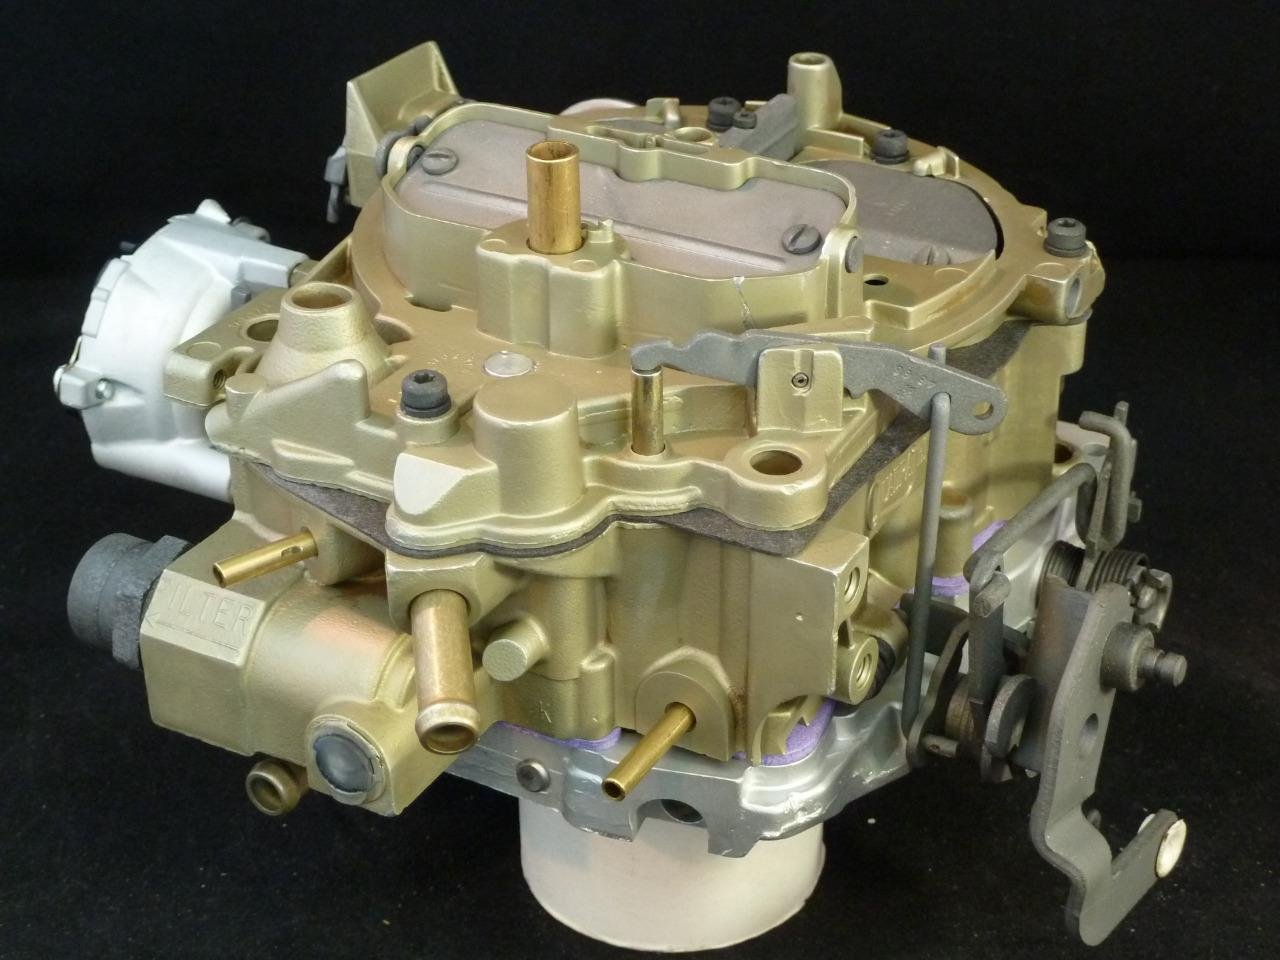 All Chevy 305 chevy engine for sale : Amazon.com: ROCHESTER QUADRAJET CARBURETOR fits 81-88 CHEVY GMC ...